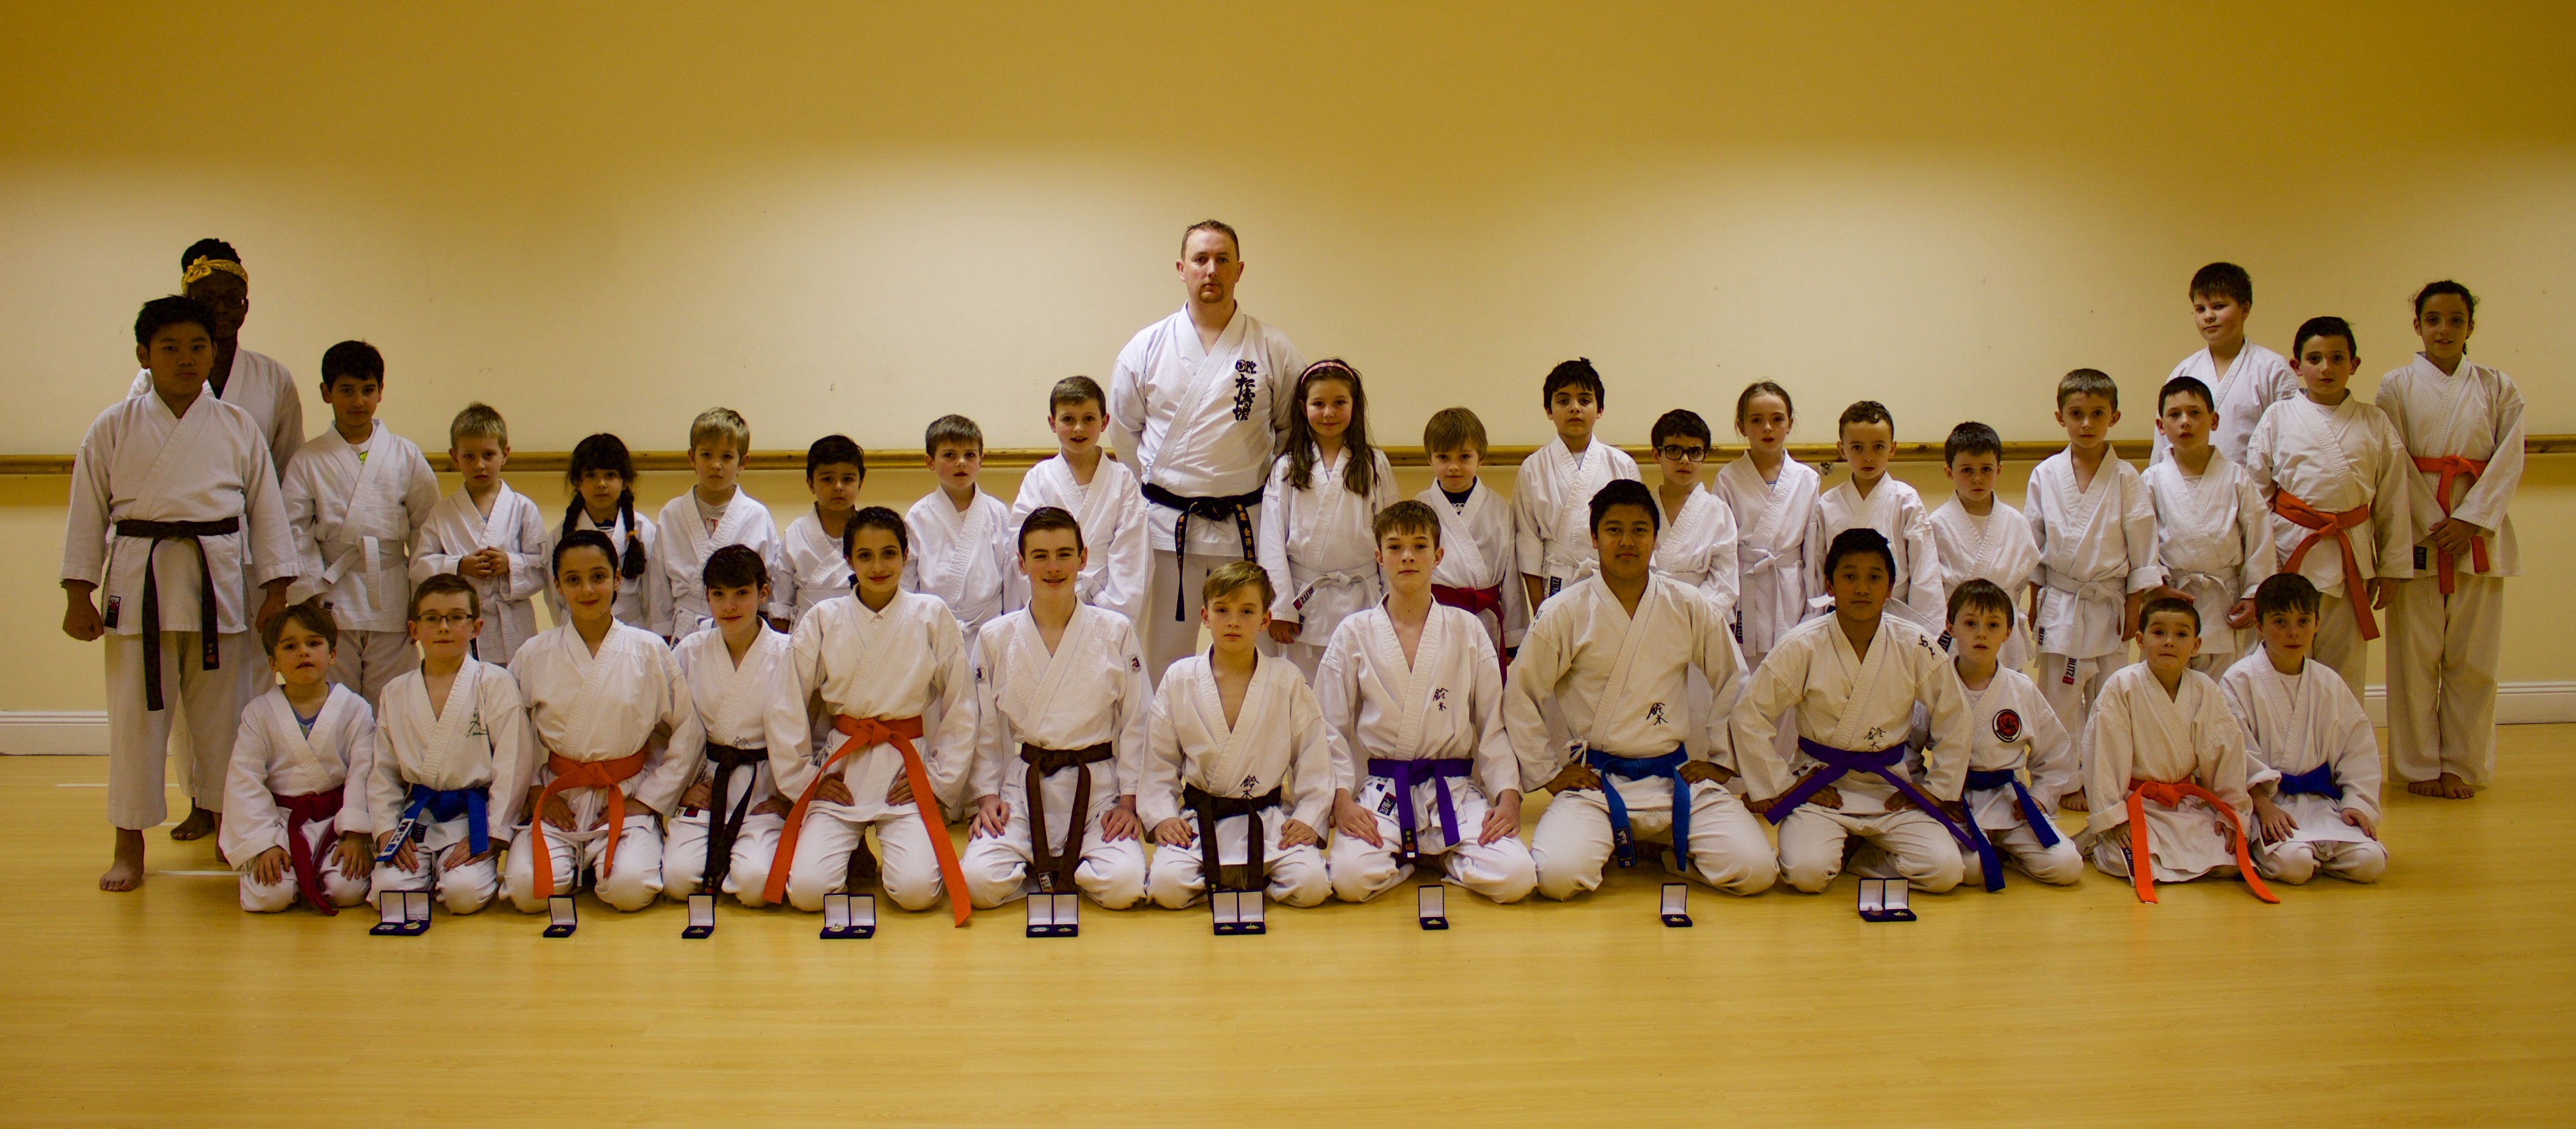 Bushido Karate Club members including members who won a massive 10 Gold, 1 Silver and 3 Bronze Medals at the 2015 SKIF Ireland National Championships